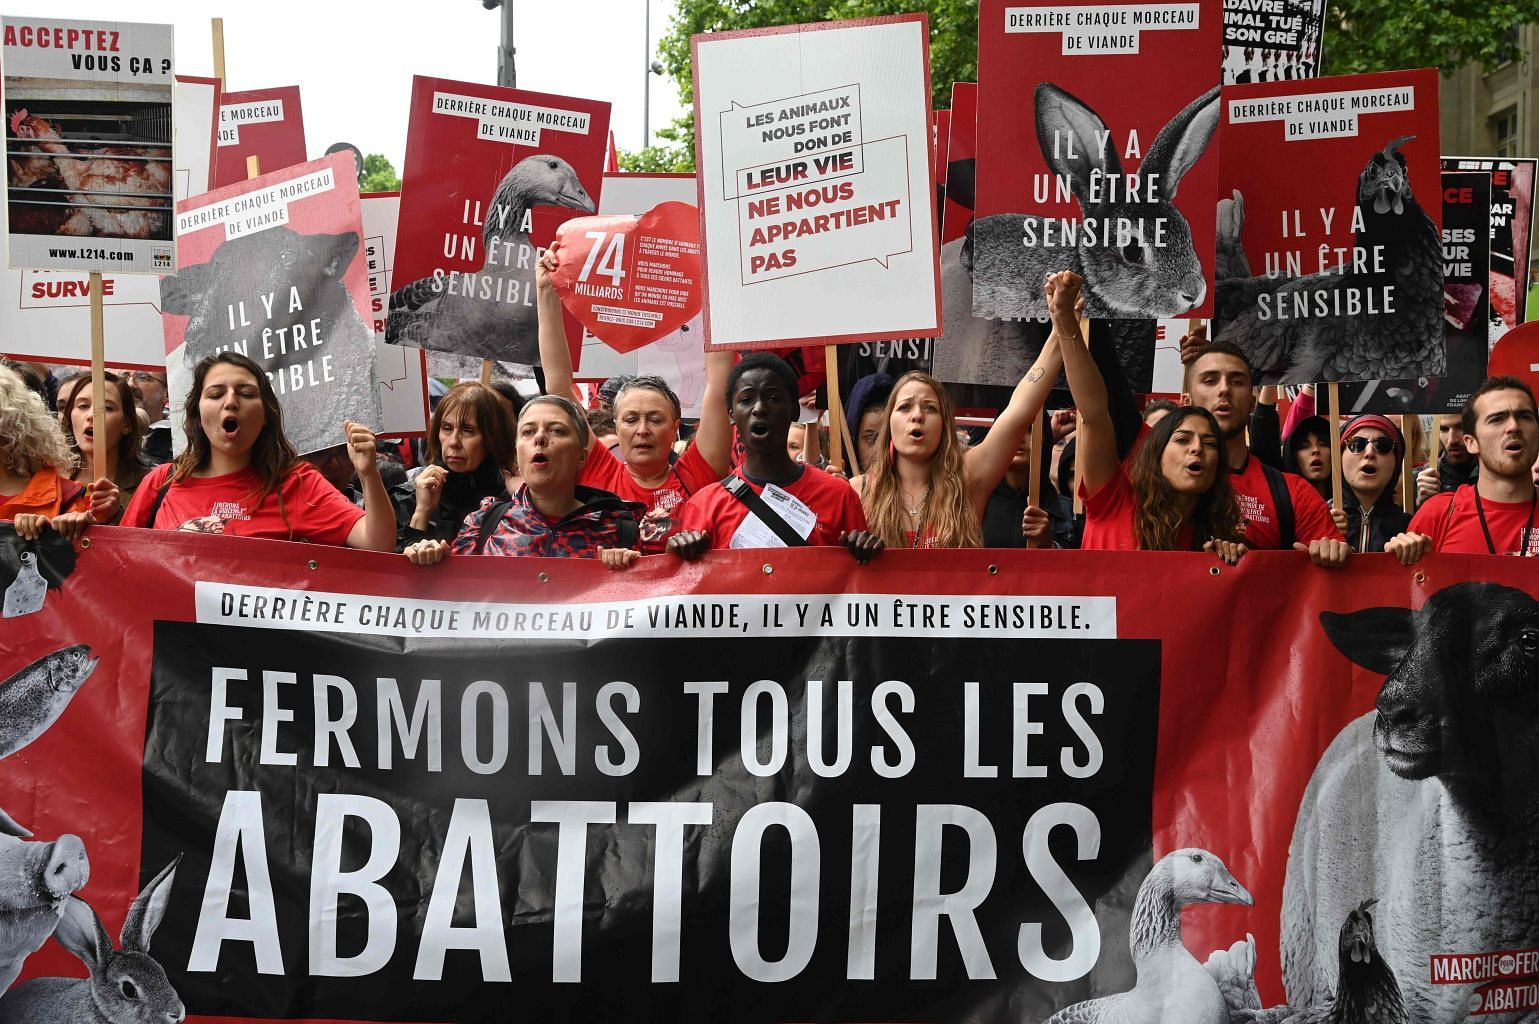 Animal rights activists march against abbatoirs in Paris, Europe